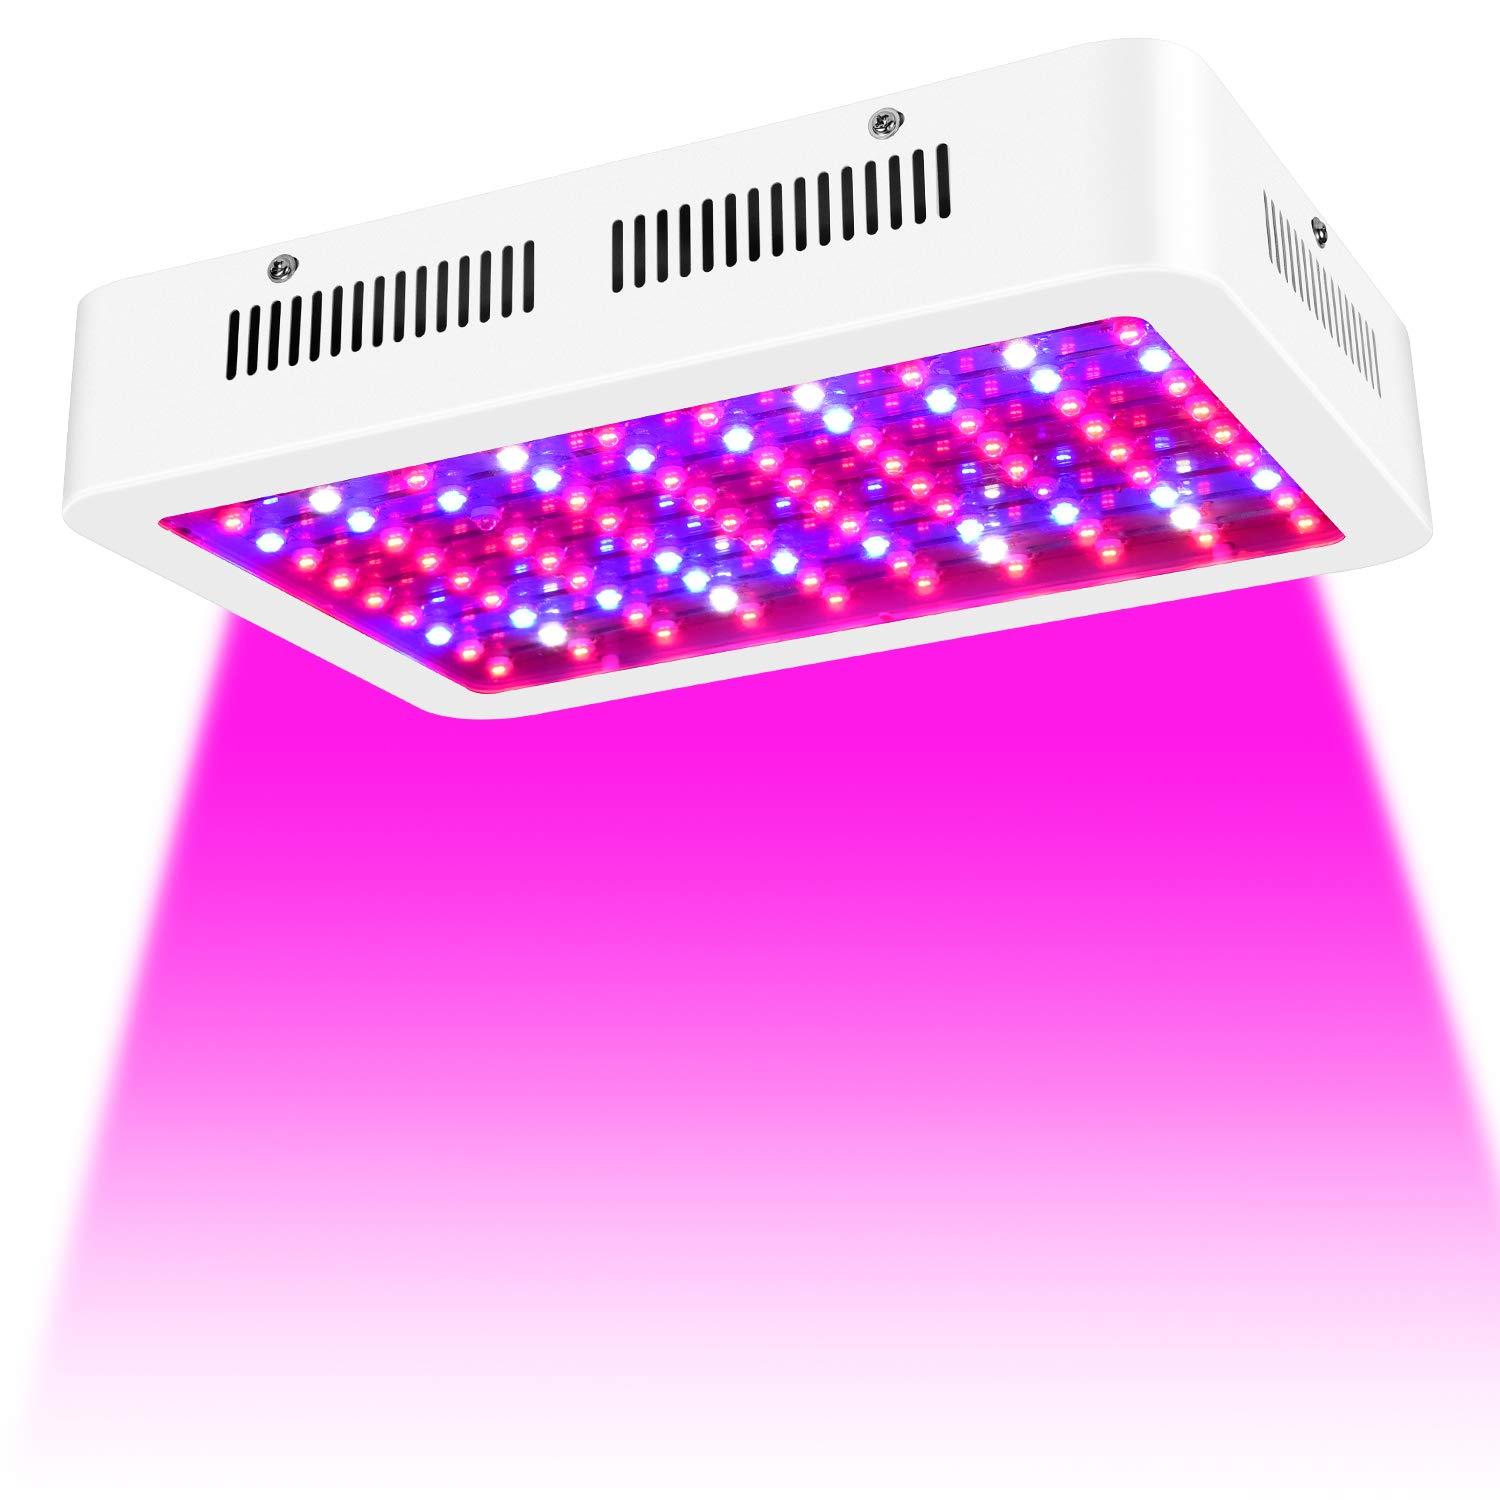 1000W LED Grow Light, Lxyoug Double Chips Full Spectrum Grow Lamp with Rope Hanger for Indoor Greenhouse Hydroponic Plants Veg and Flower